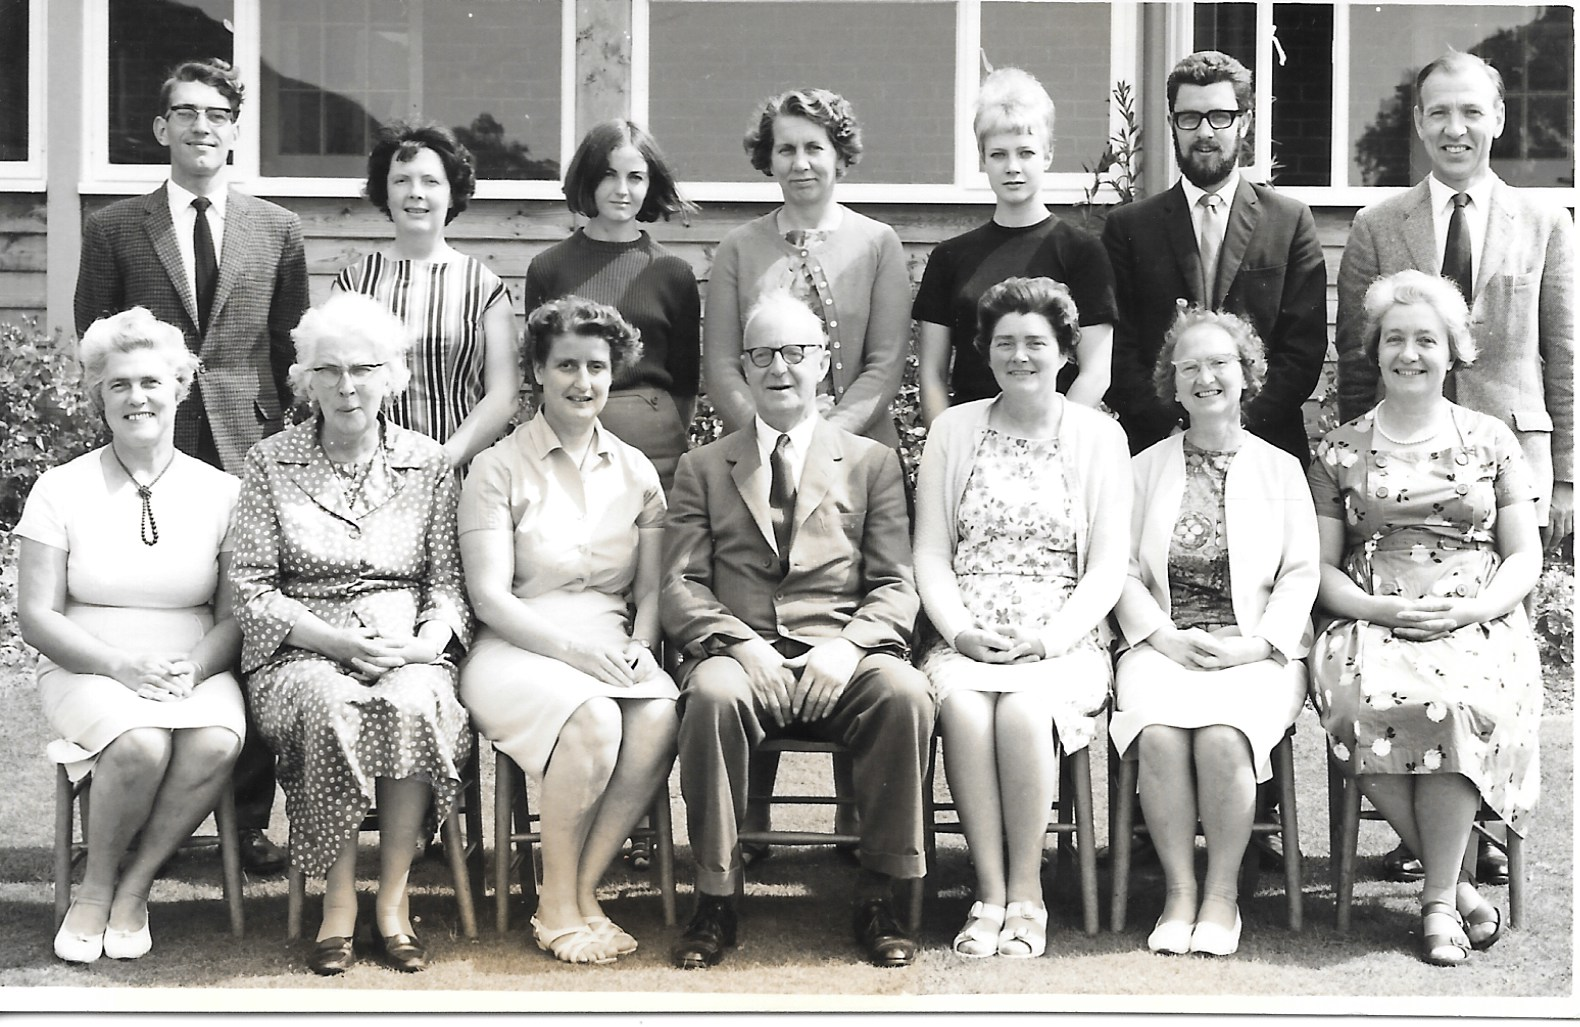 Staff photo  Back row - ?, ?, ?, ?, Miss Clarke, Mr Wolloughby, Mr Chipperfield Front row - Mrs Blake, Miss Glover, Miss Percival, Mr King, Mrs Cooper, Miss Brown, Mrs Green